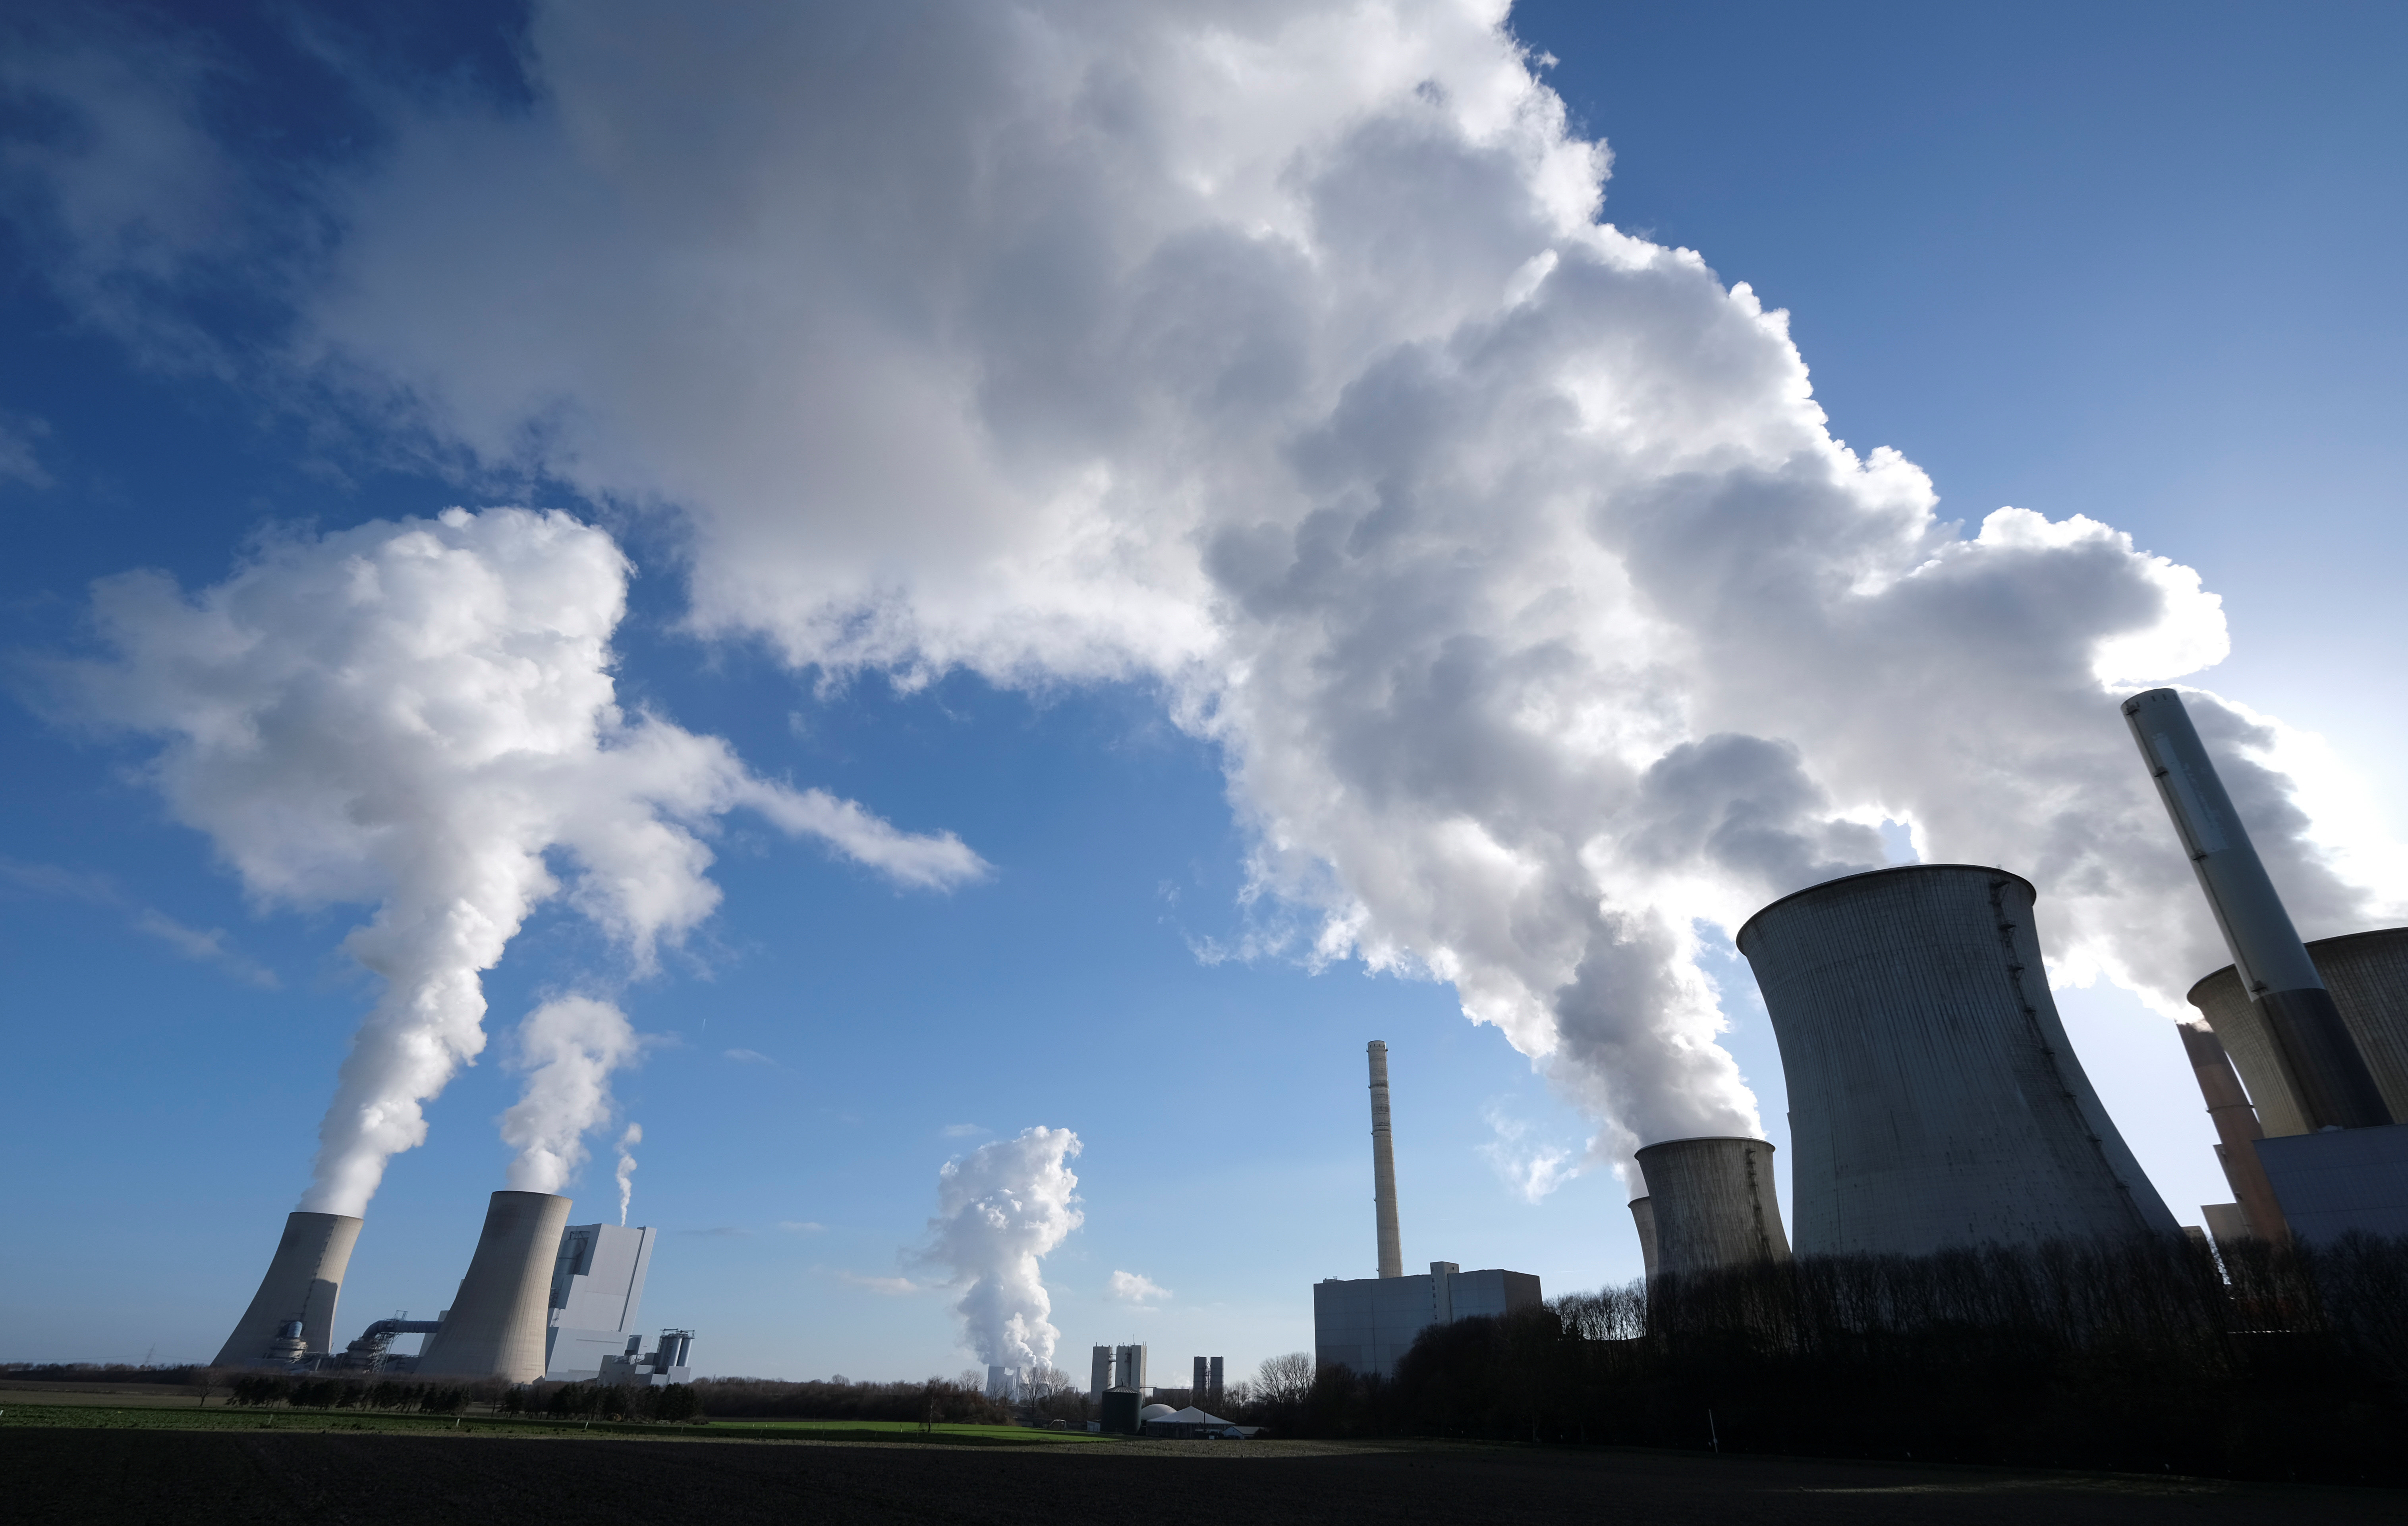 """The lignite power plants of """"Neurath New"""", Niederaussem, and """"Neurath Old"""" of German energy supplier and utility RWE are pictured in Neurath, north-west of Cologne, Germany, February 5, 2020."""